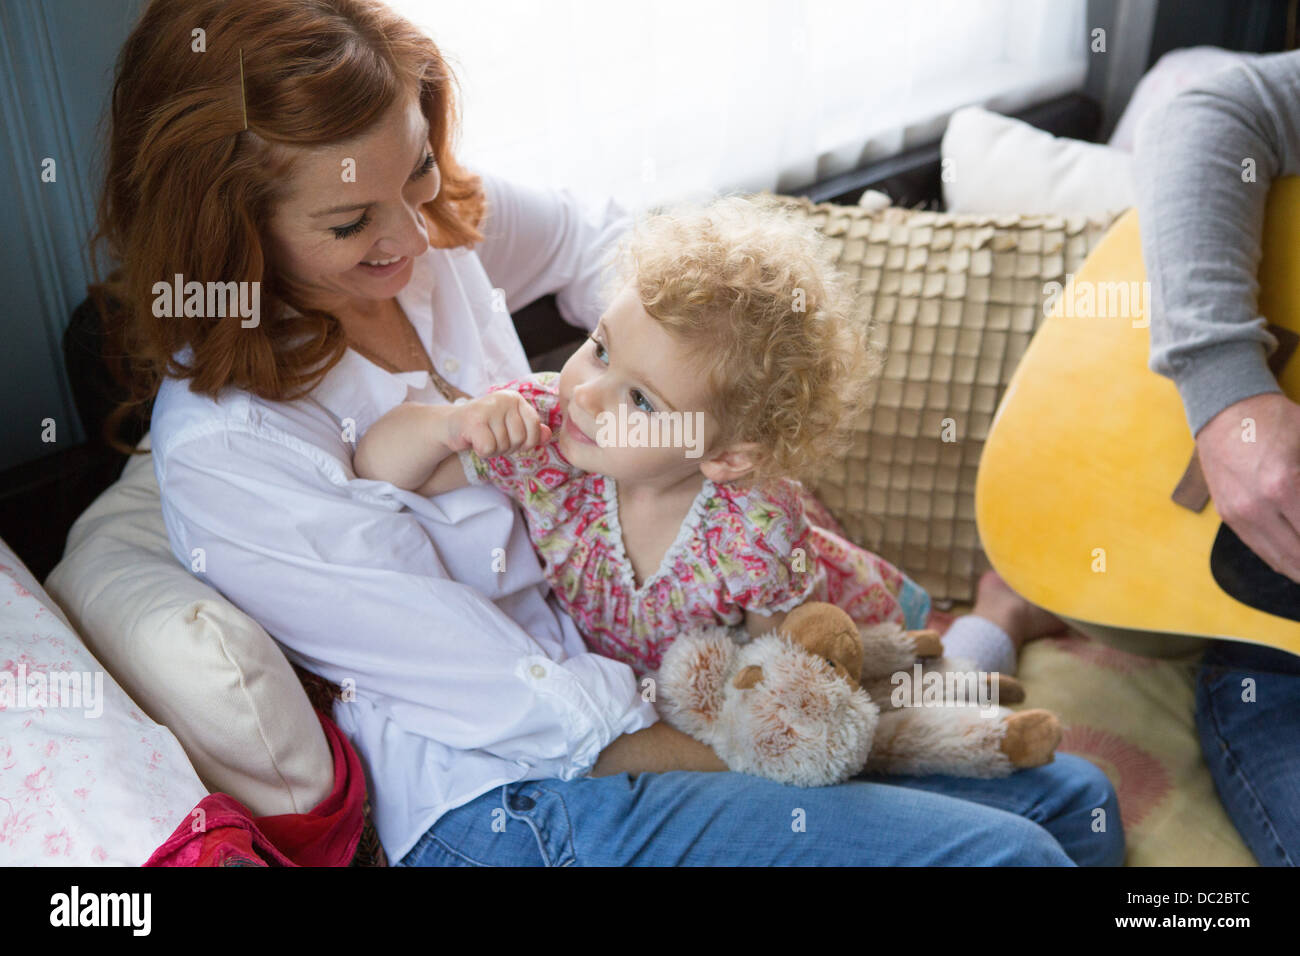 Mother smiling at child - Stock Image